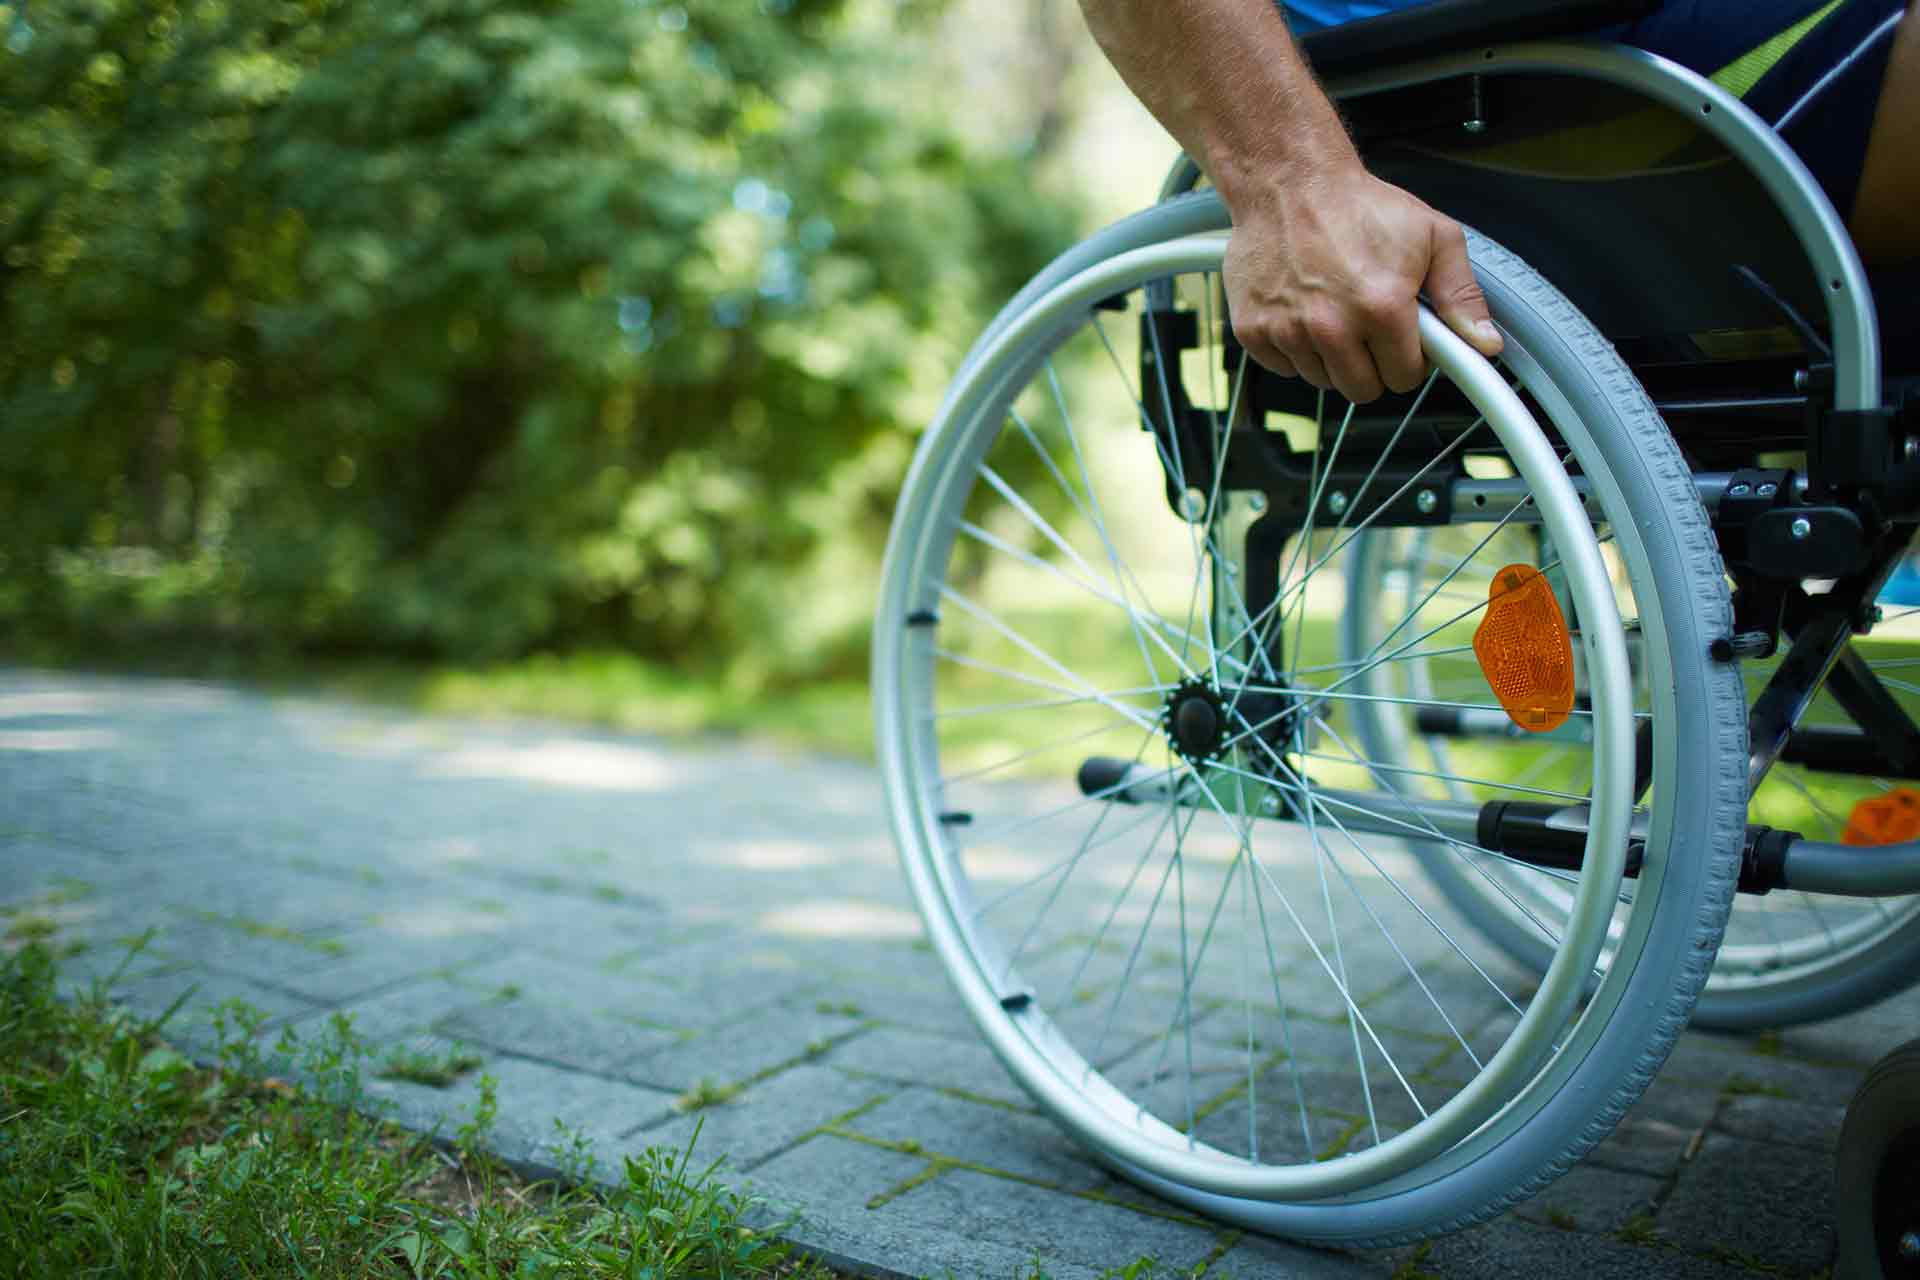 Covid-19: Why lawyers need to be ready to protect their clients in long-term disability insurance claims